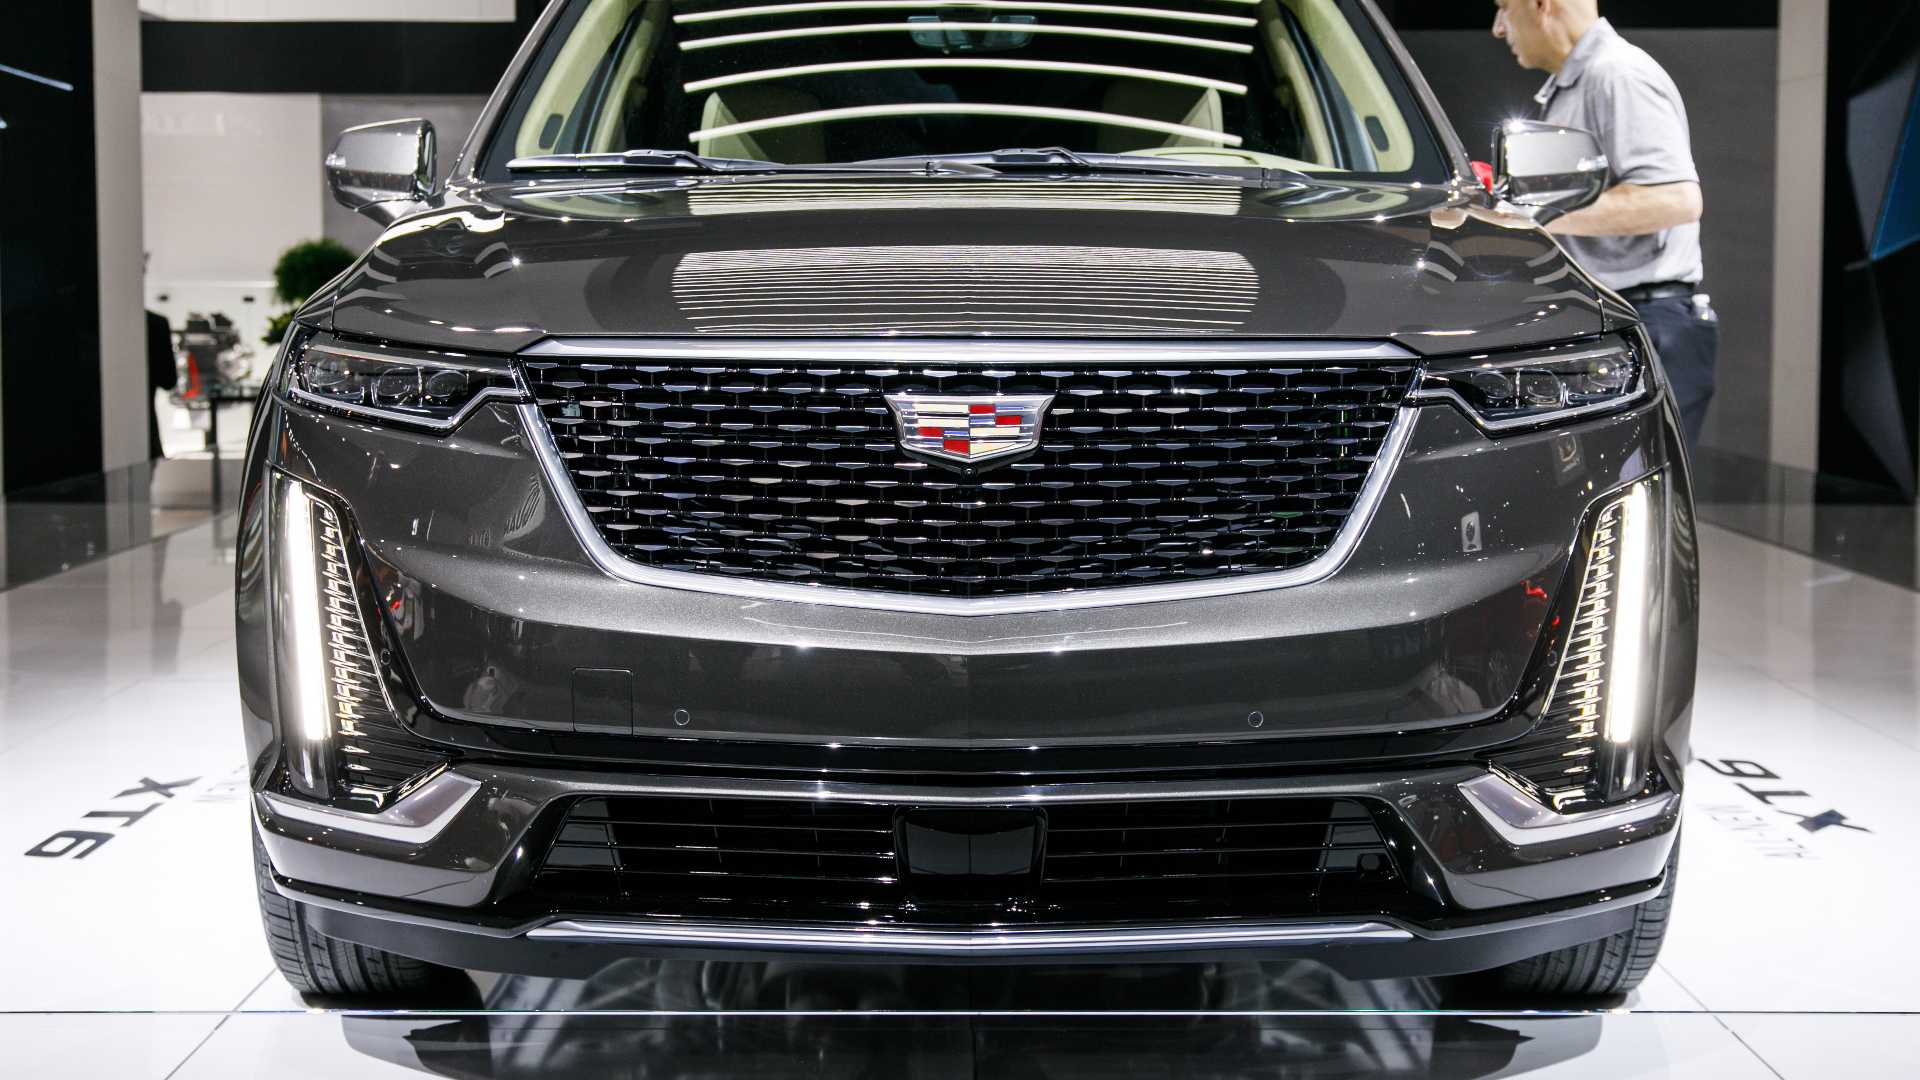 42 The Pictures Of 2020 Cadillac Xt6 New Concept